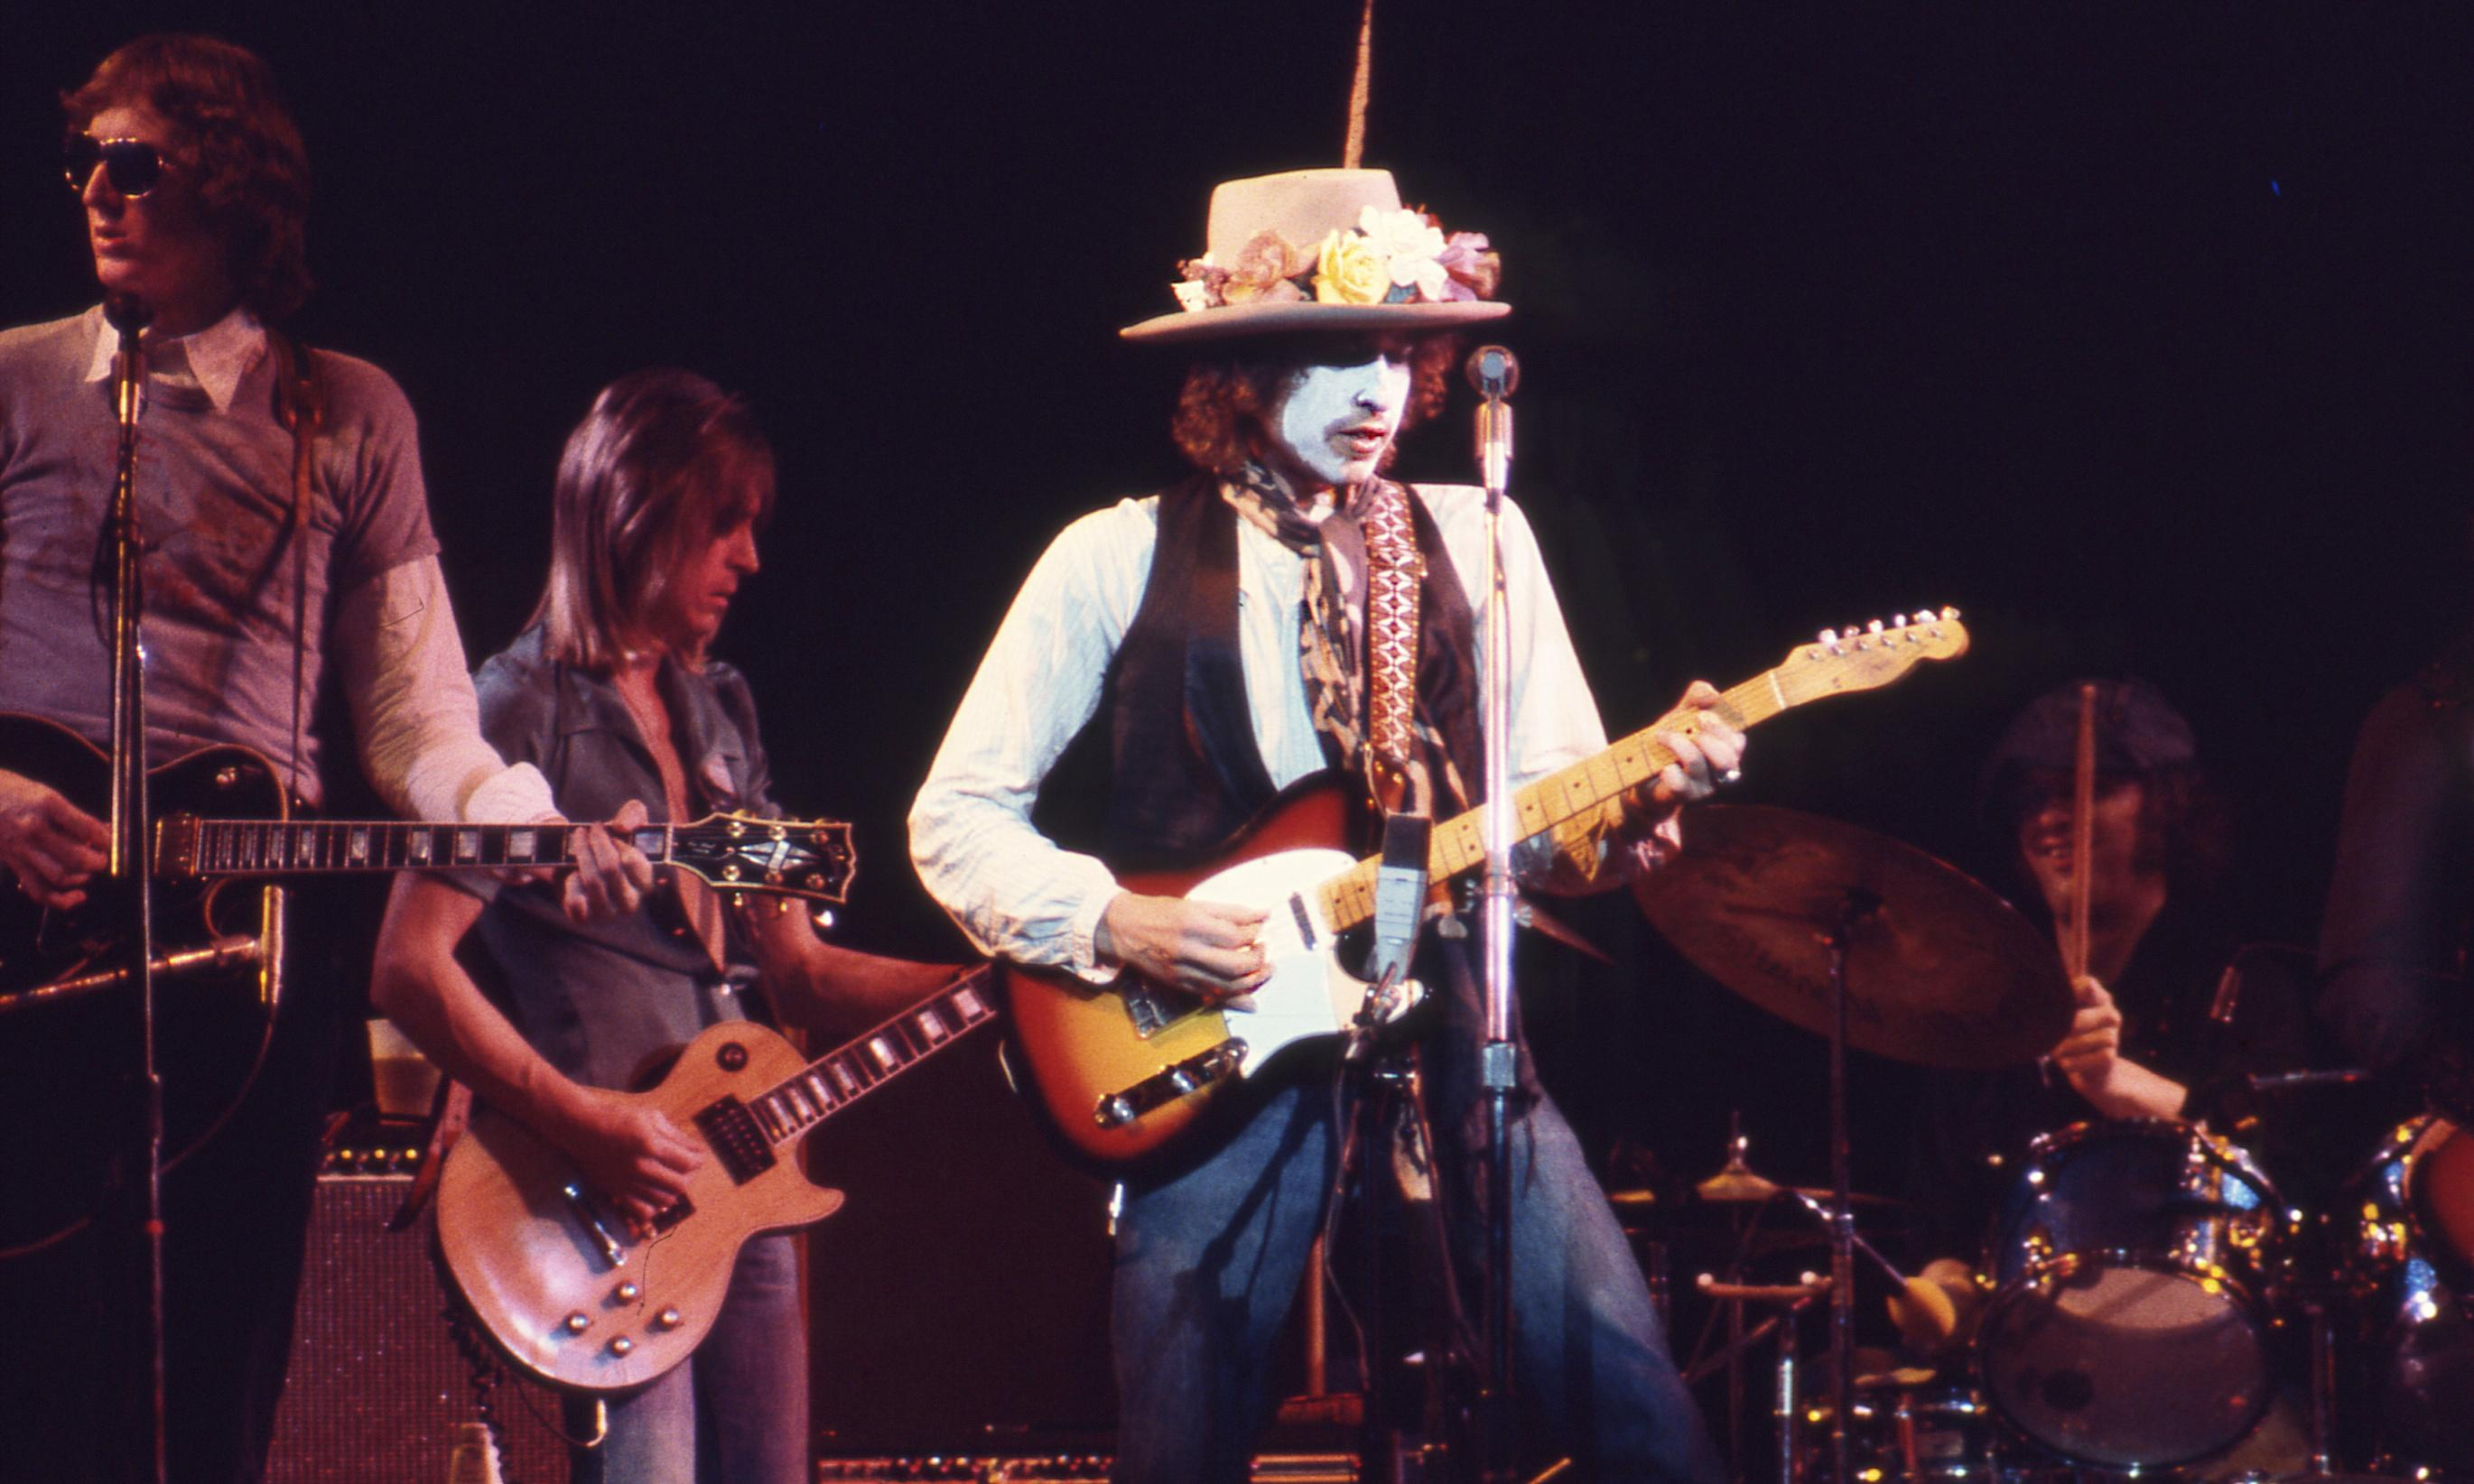 Rolling Thunder Revue: A Bob Dylan Story by Martin Scorsese review – passion on tour